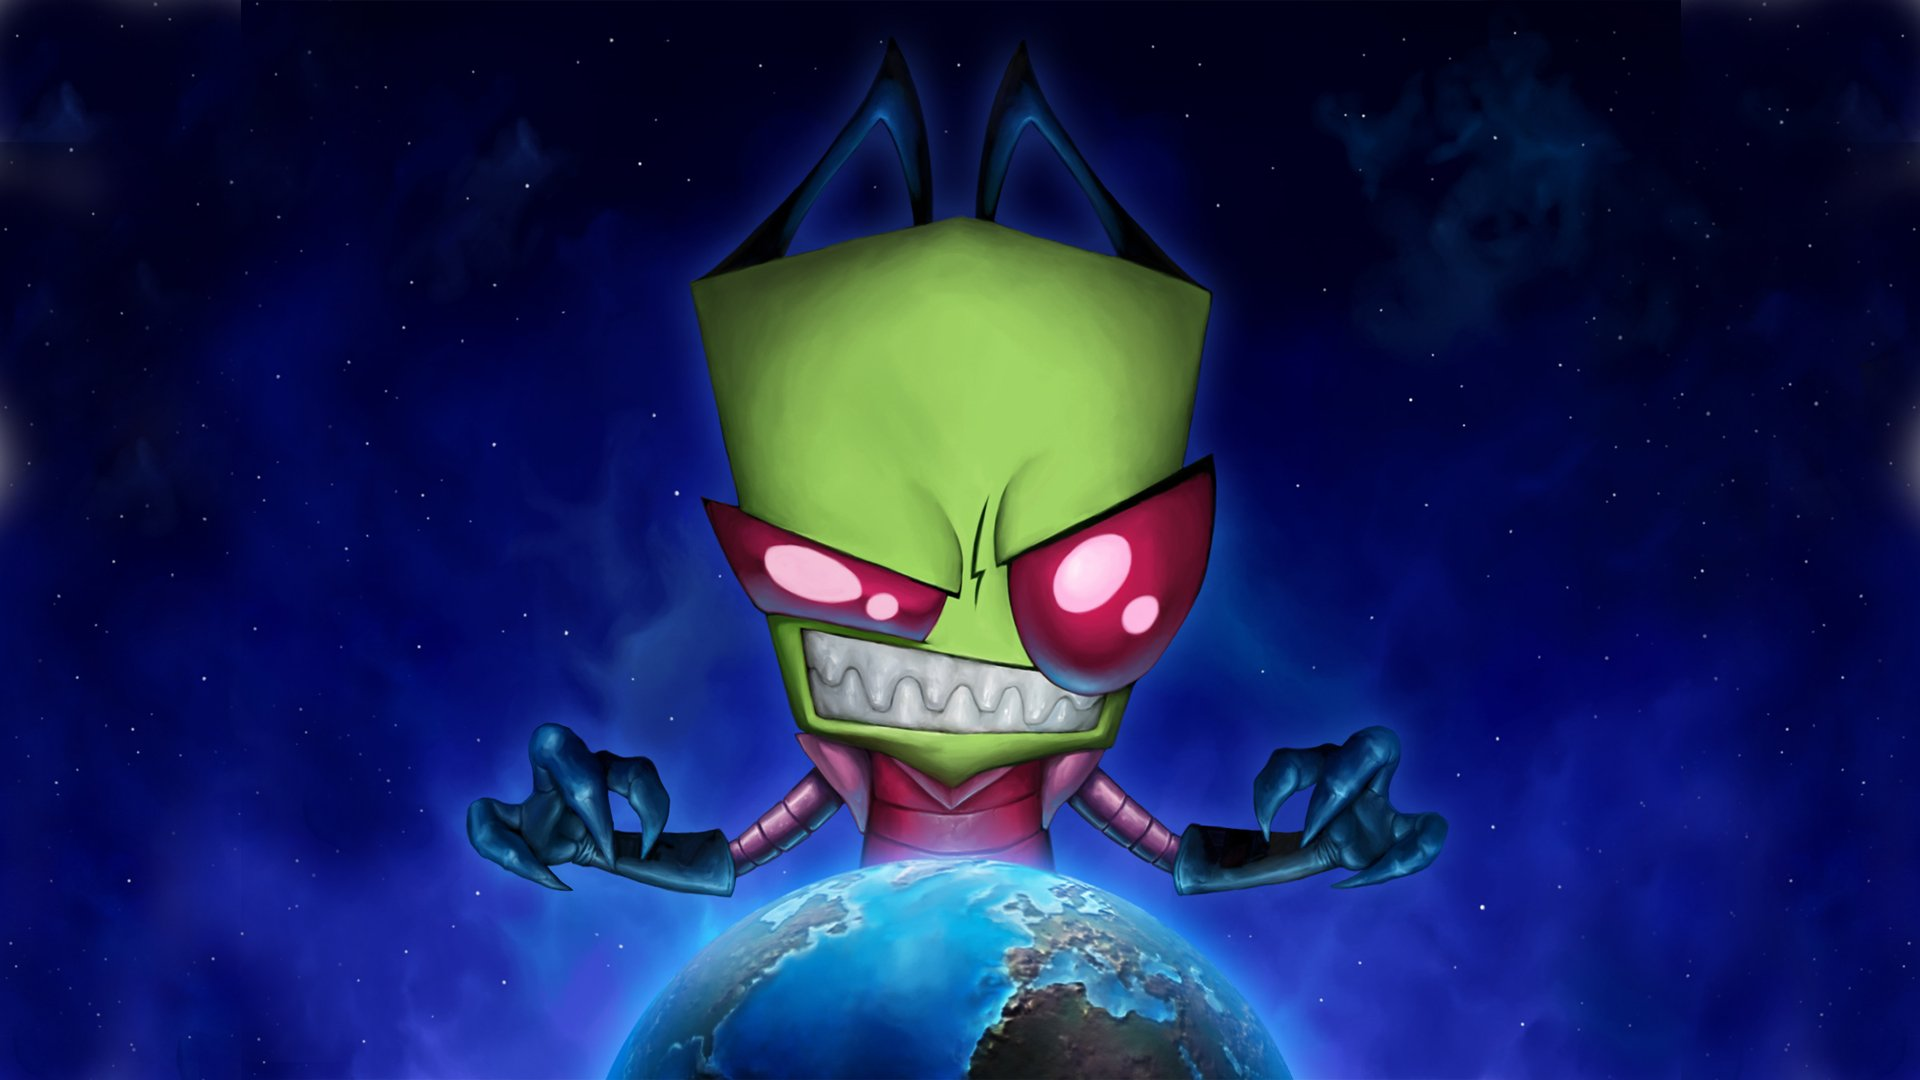 cartoons-alien-eyes-red-earth-invader-images-1920×1080-wallpaper-wp3603943